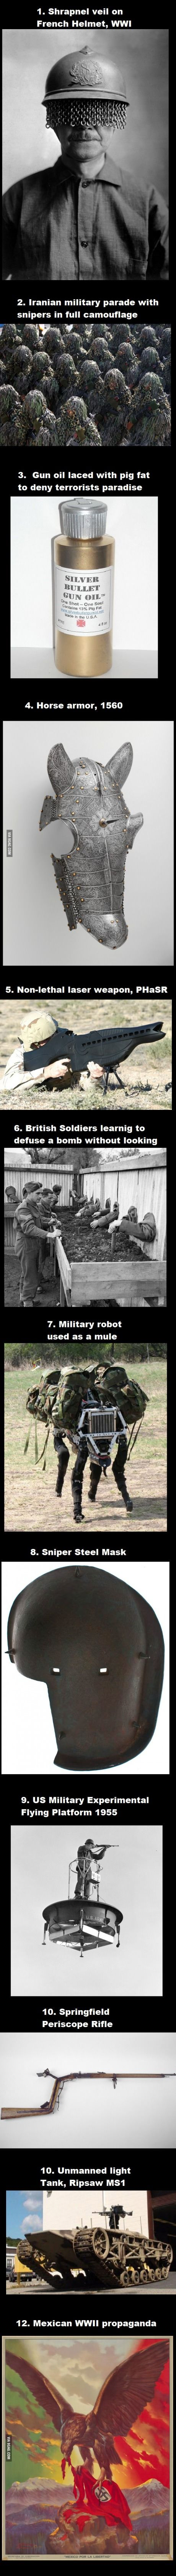 Collection of interesting pictures I found over the years, Part 20: Military (look at my posts for the other parts)